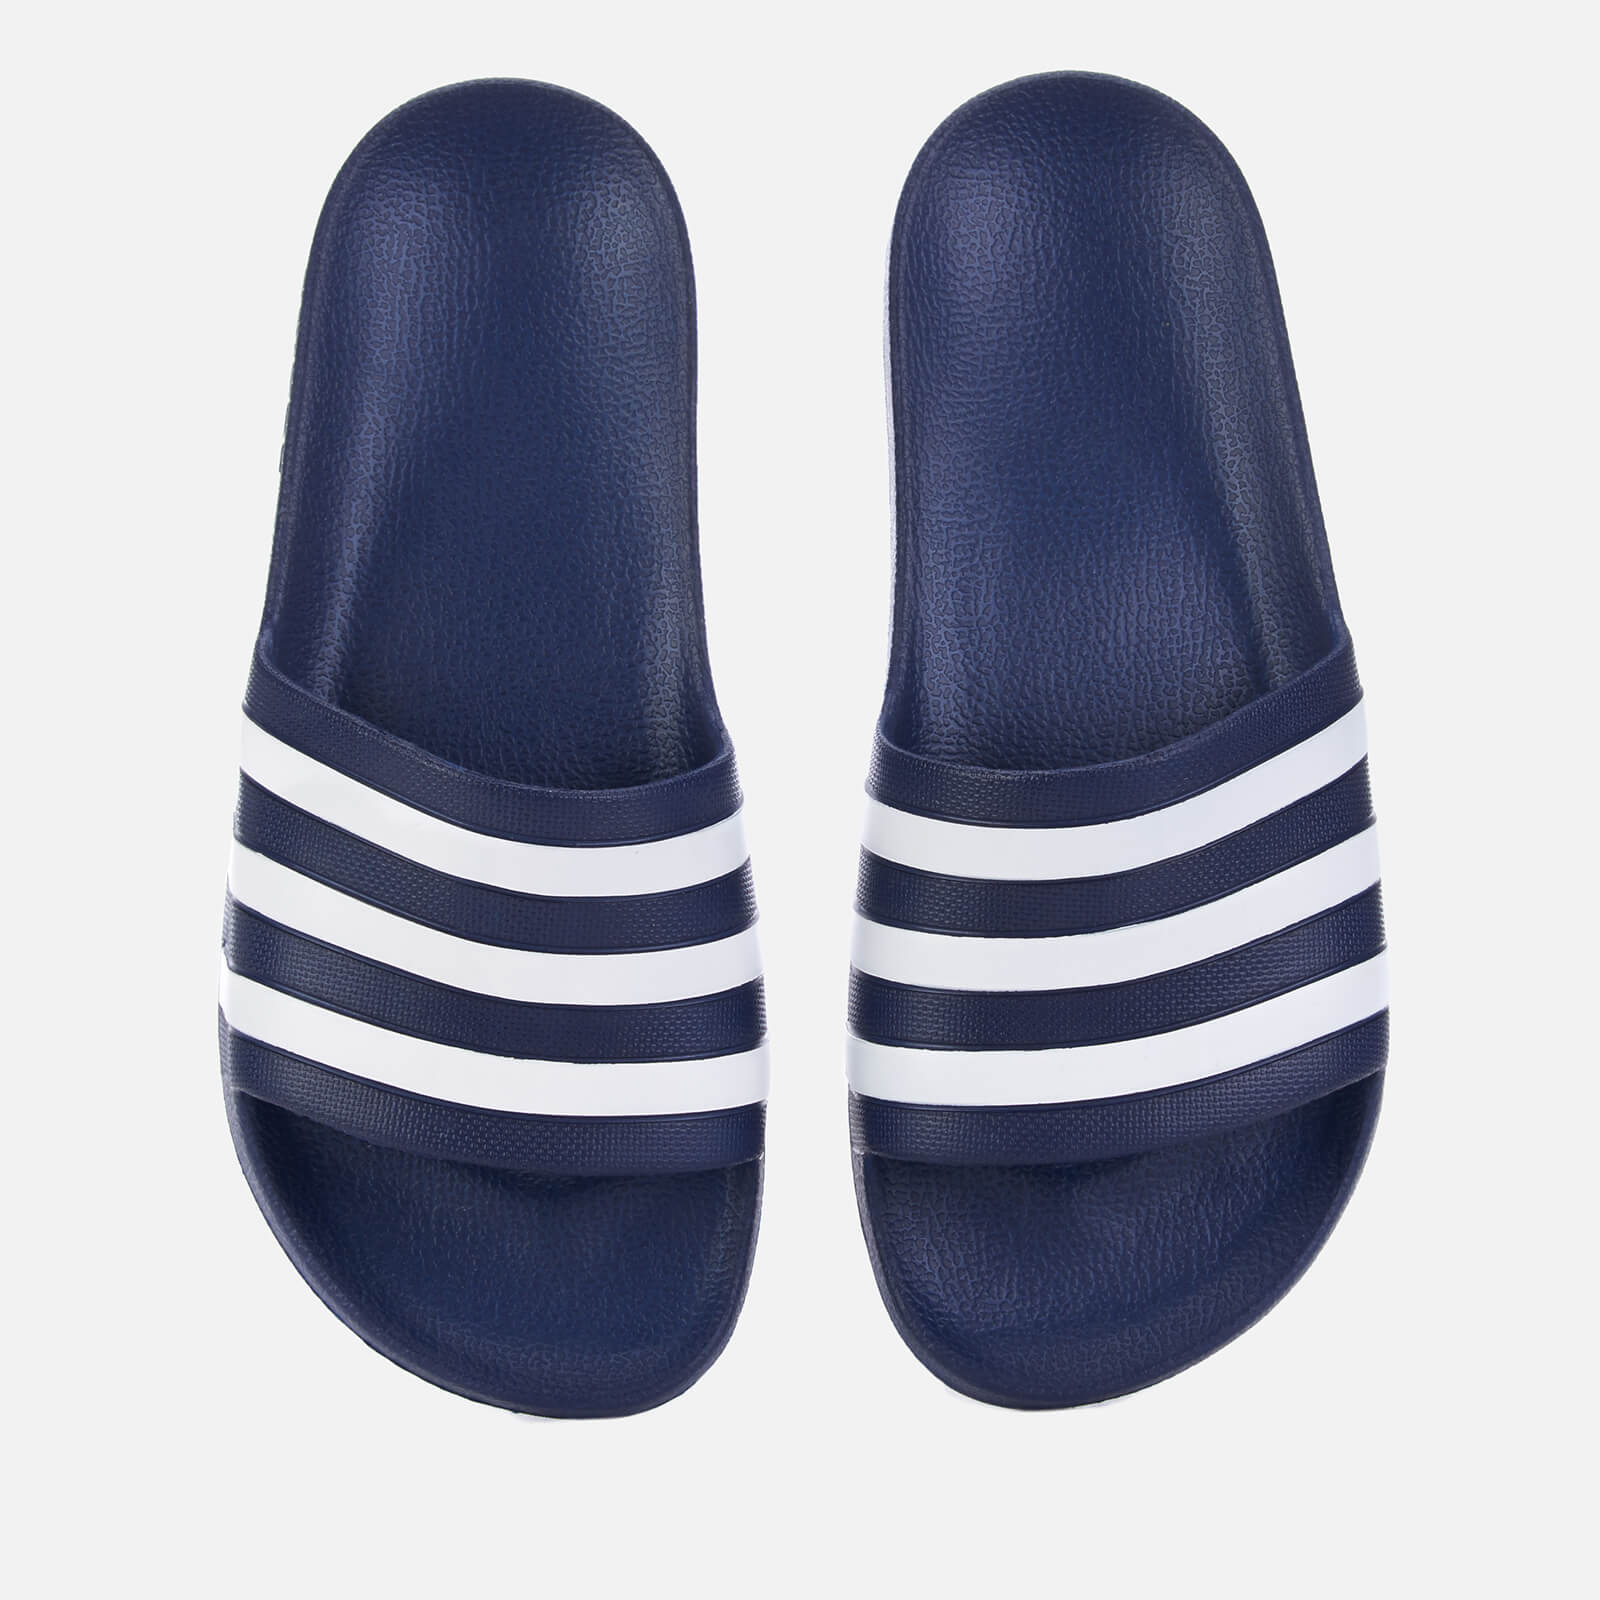 cc52d27495d8 adidas Men s Adilette Aqua Slide Sandals - Dark Blue Sports   Leisure